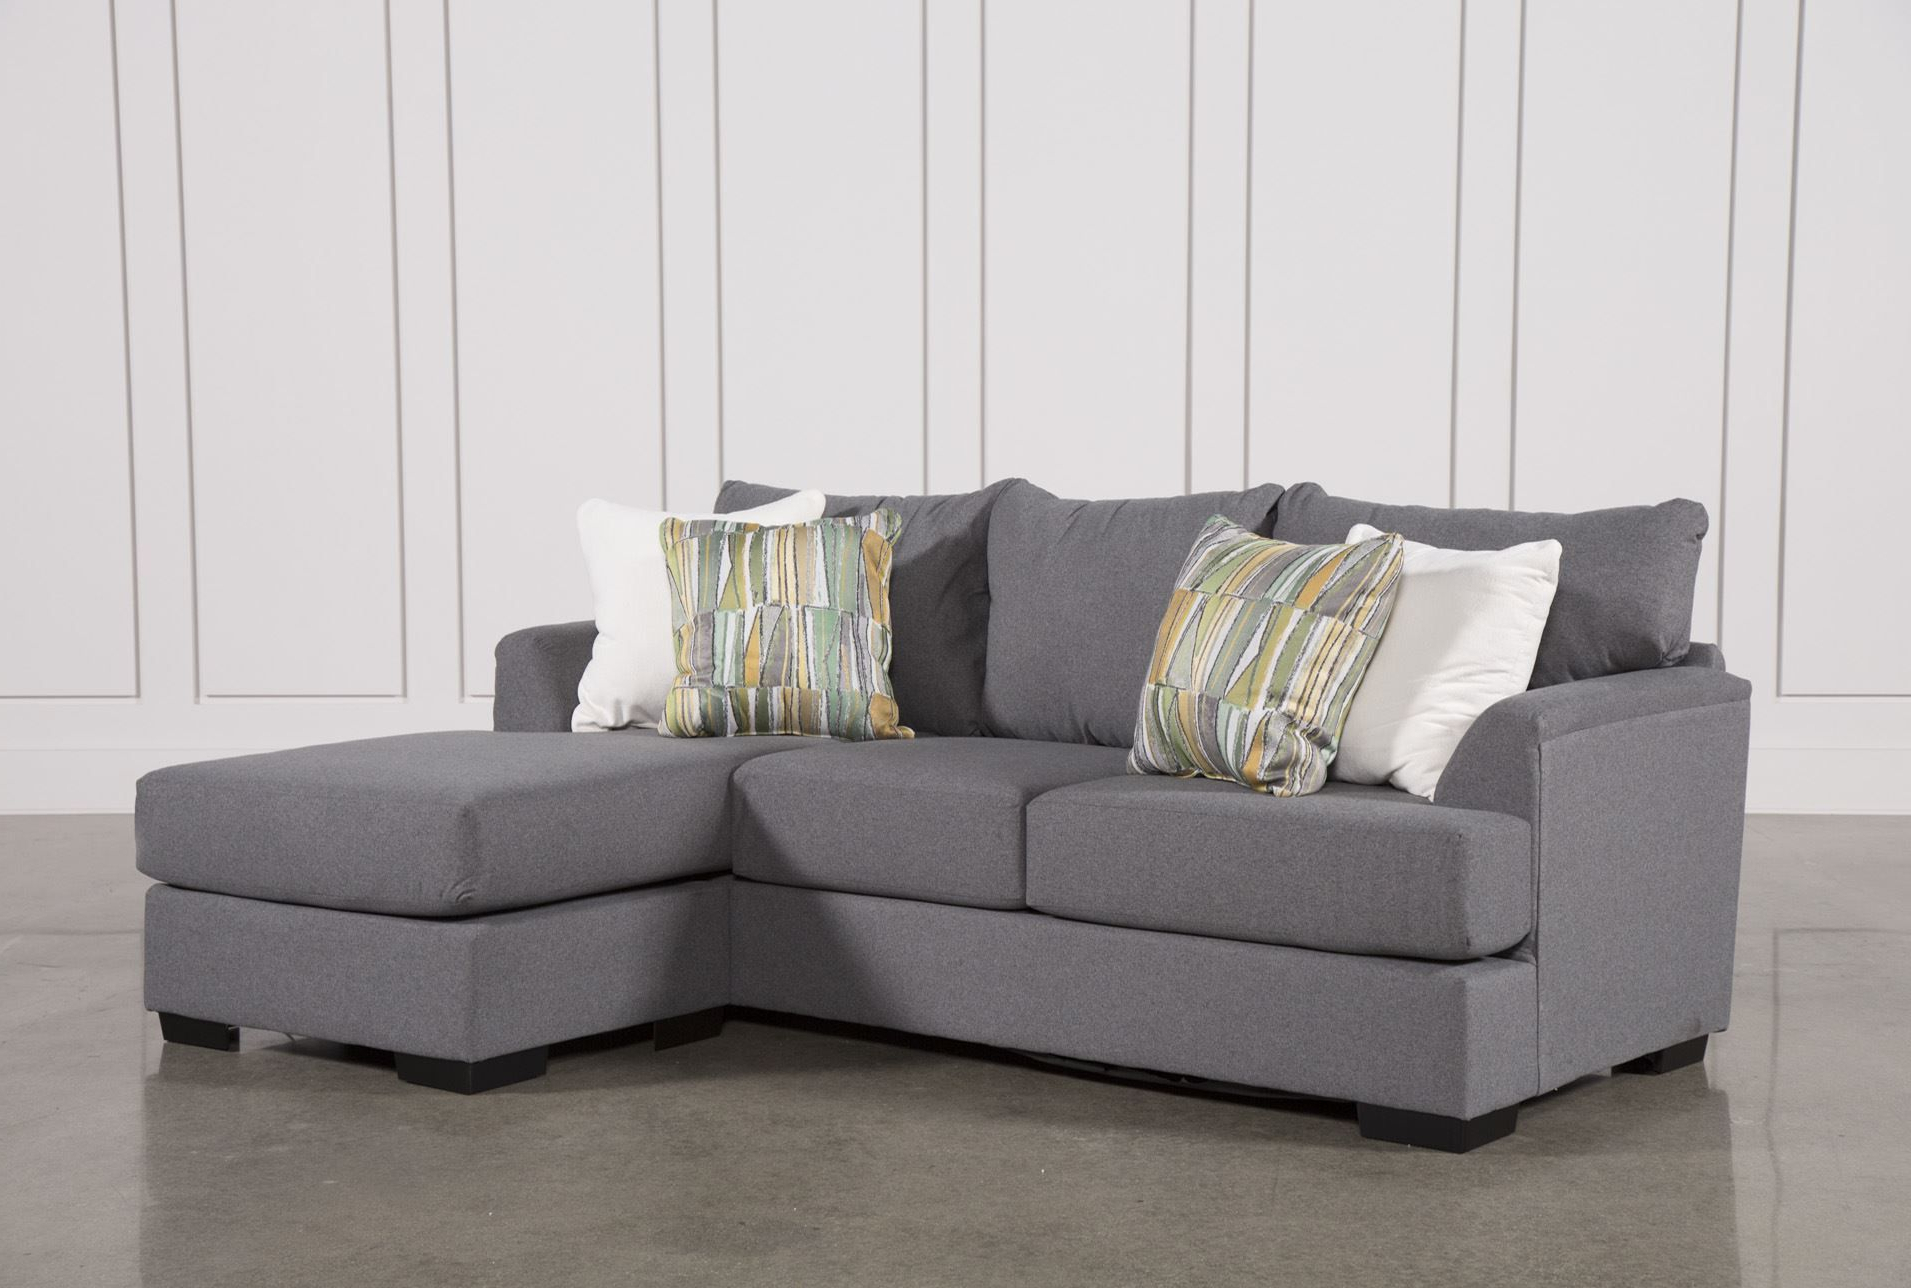 Mcculla Sofa Sectionals With Reversible Chaise Pertaining To Latest Keegan Sofa W/reversible Chaise (View 4 of 20)